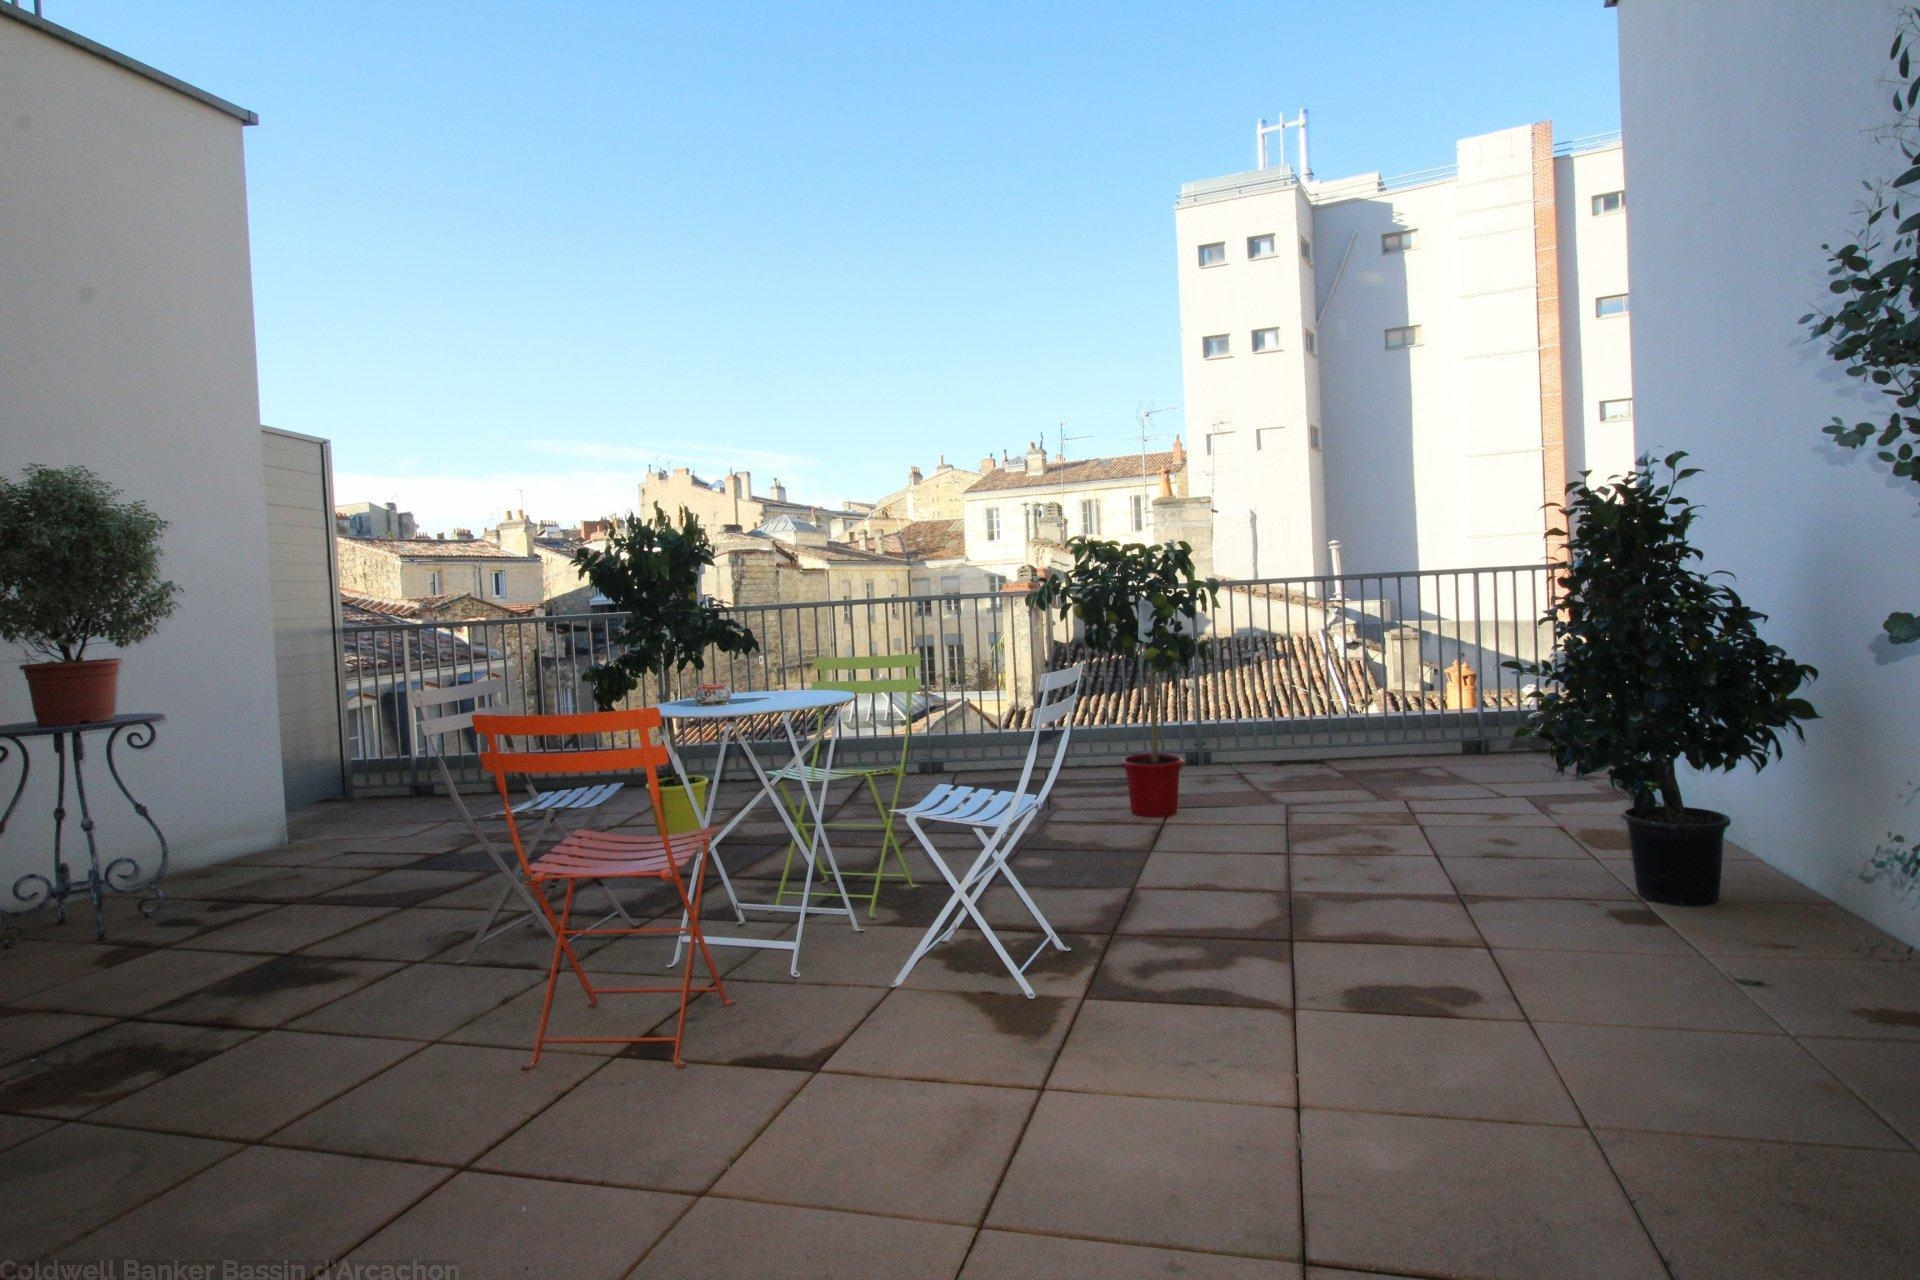 Vente appartement t3 f3 bordeaux hyper centre avec for F3 bordeaux